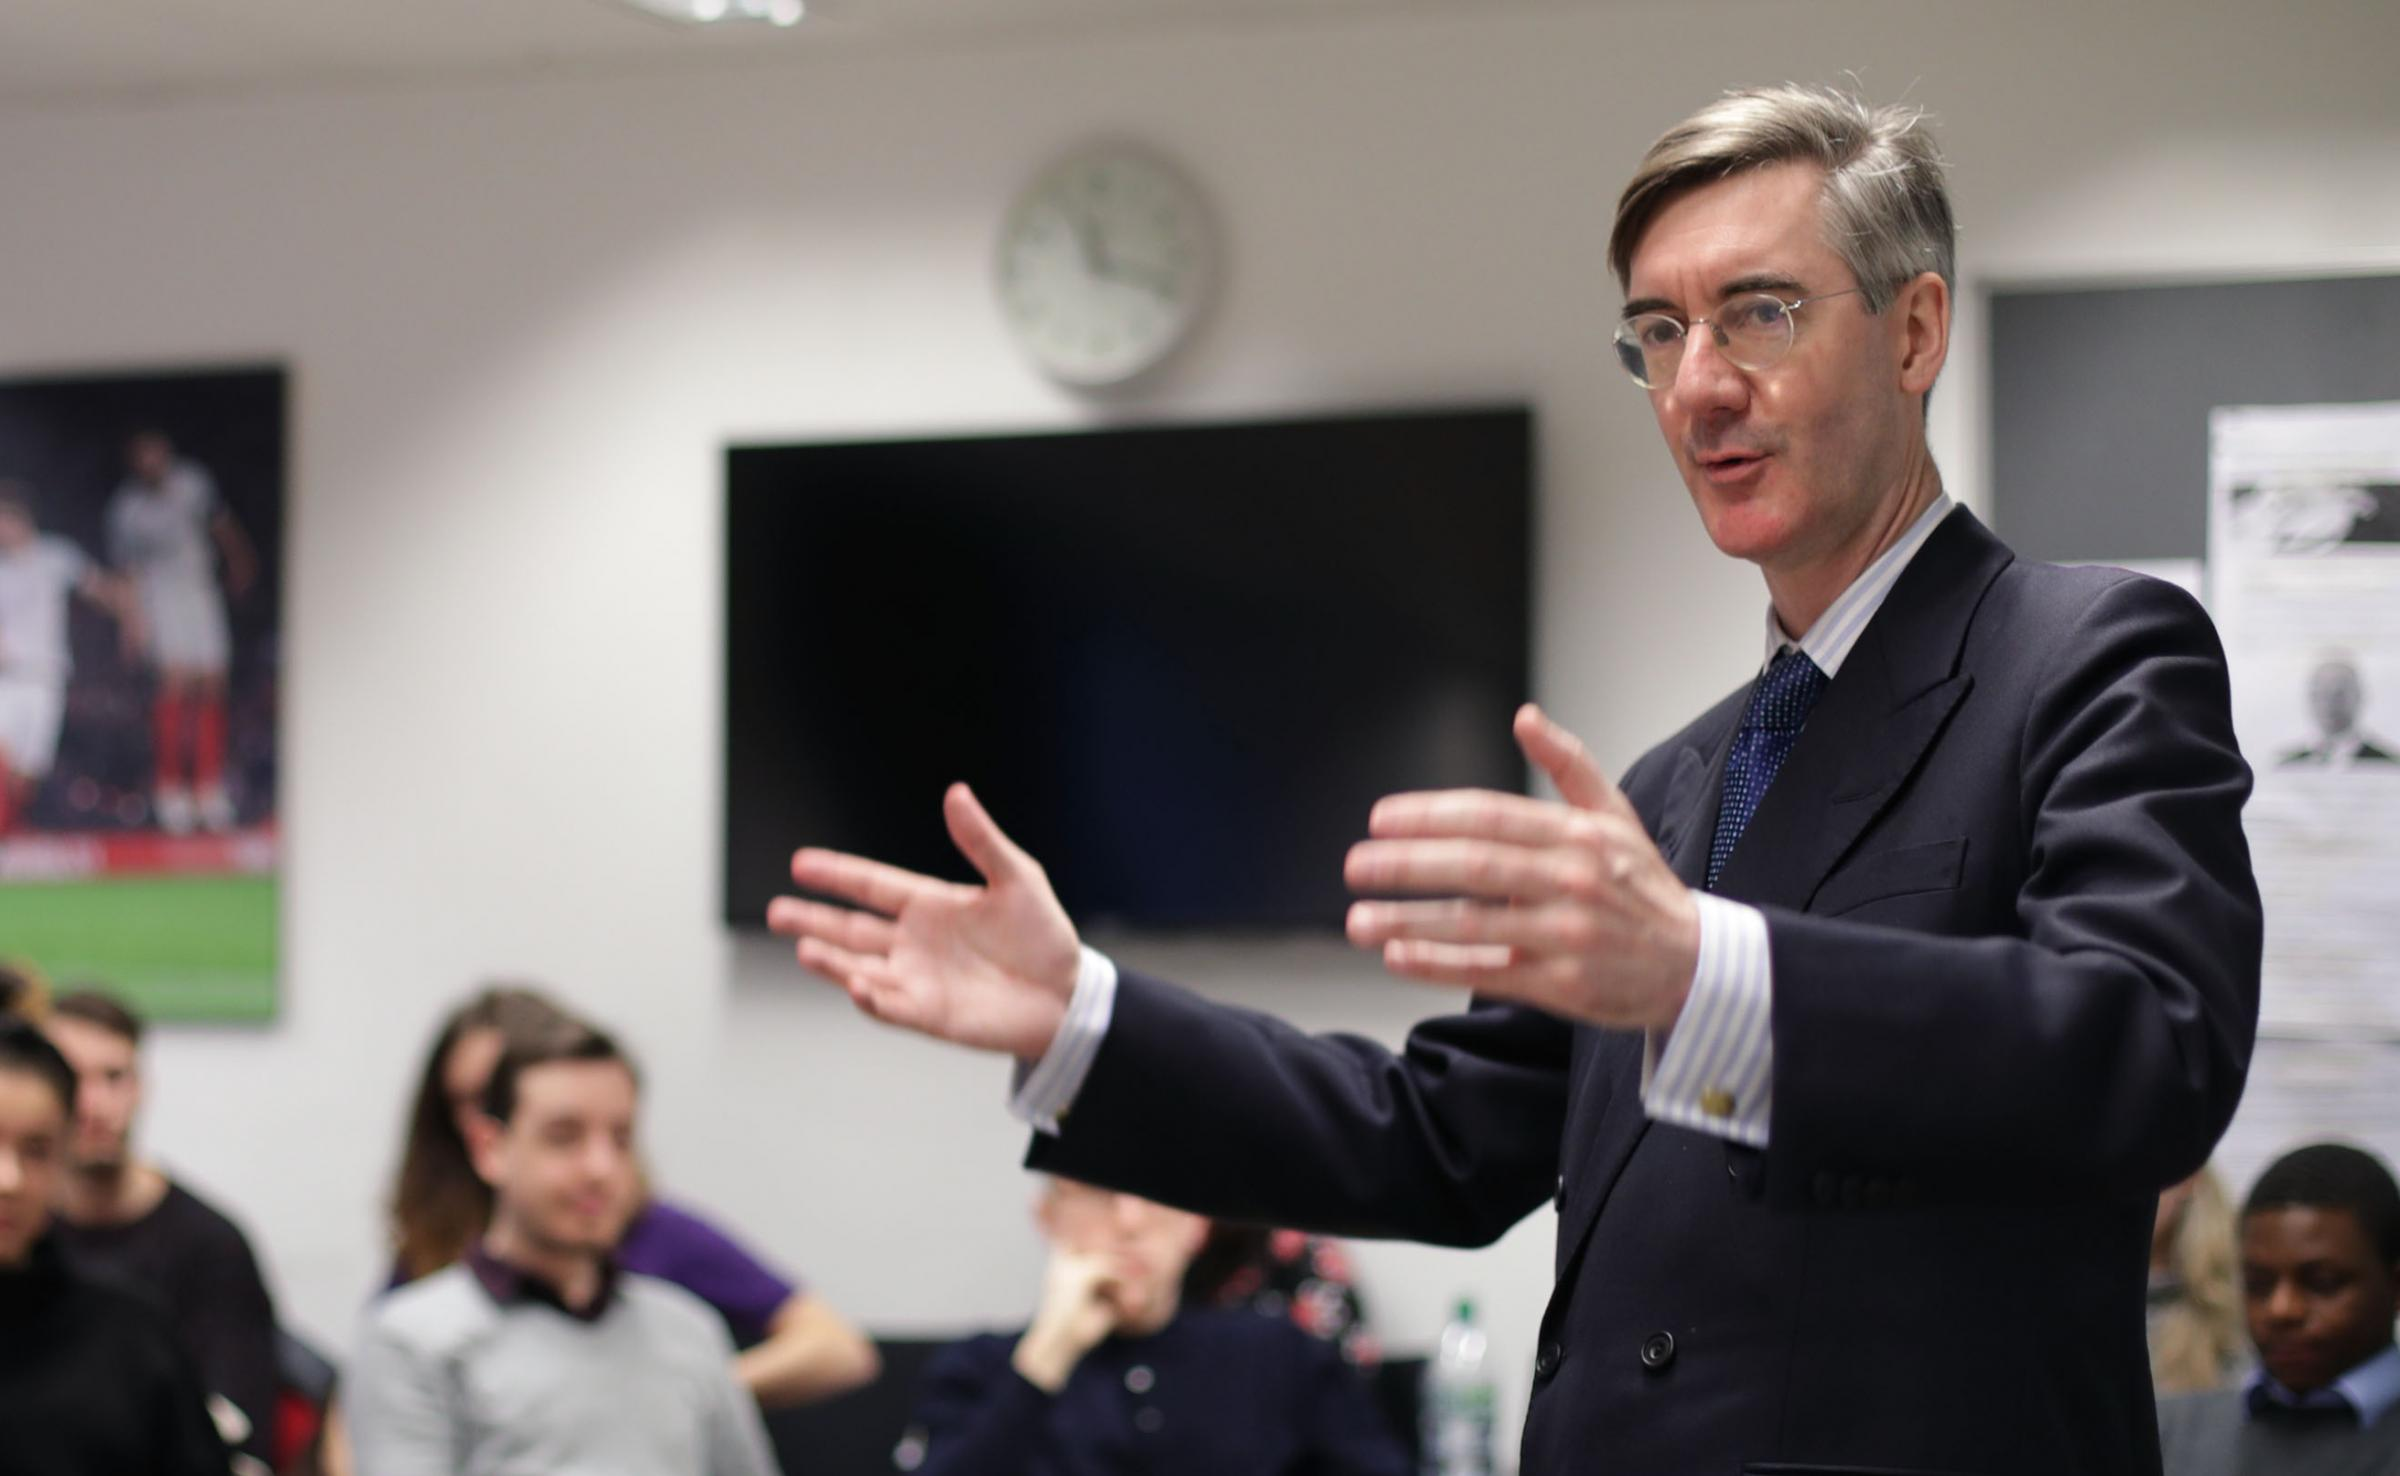 Jacob Rees-Mogg is not a fascist but is, without doubt, a right-wing ideologue